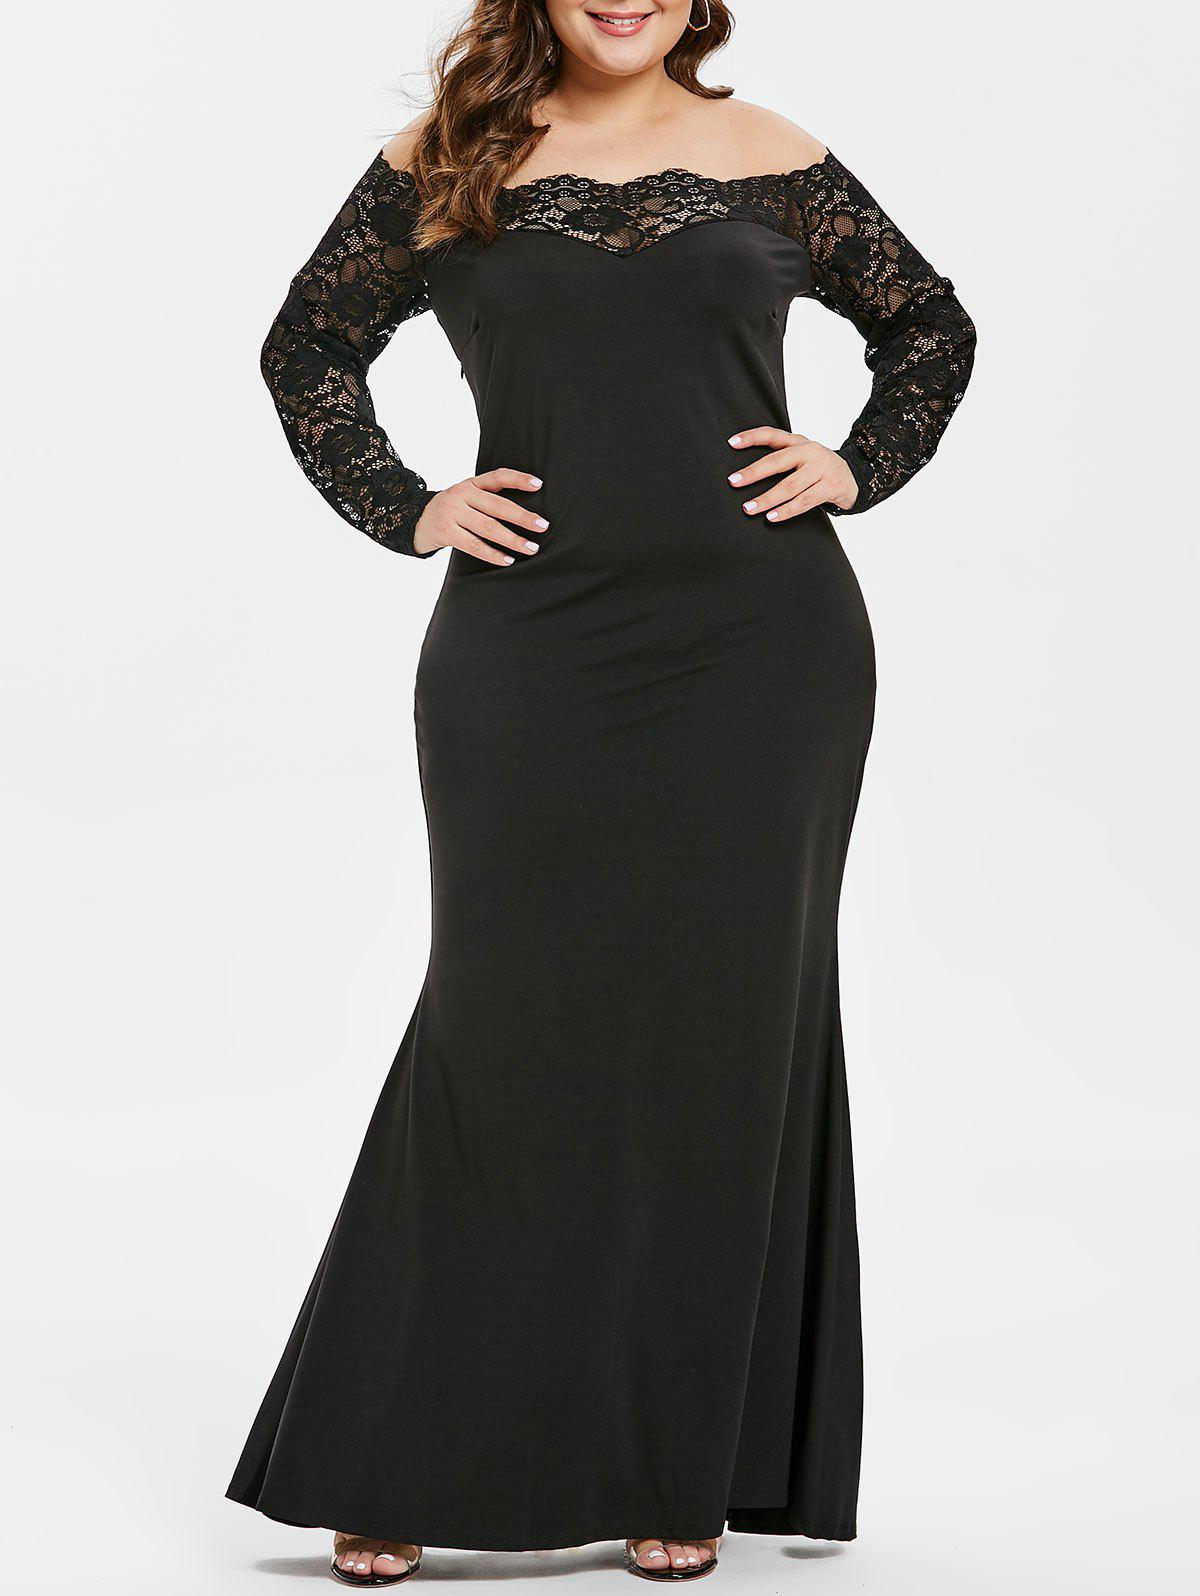 b9fae2bf09f 2019 OFF The Shoulder Plus Size Lace Sleeve Maxi Dress